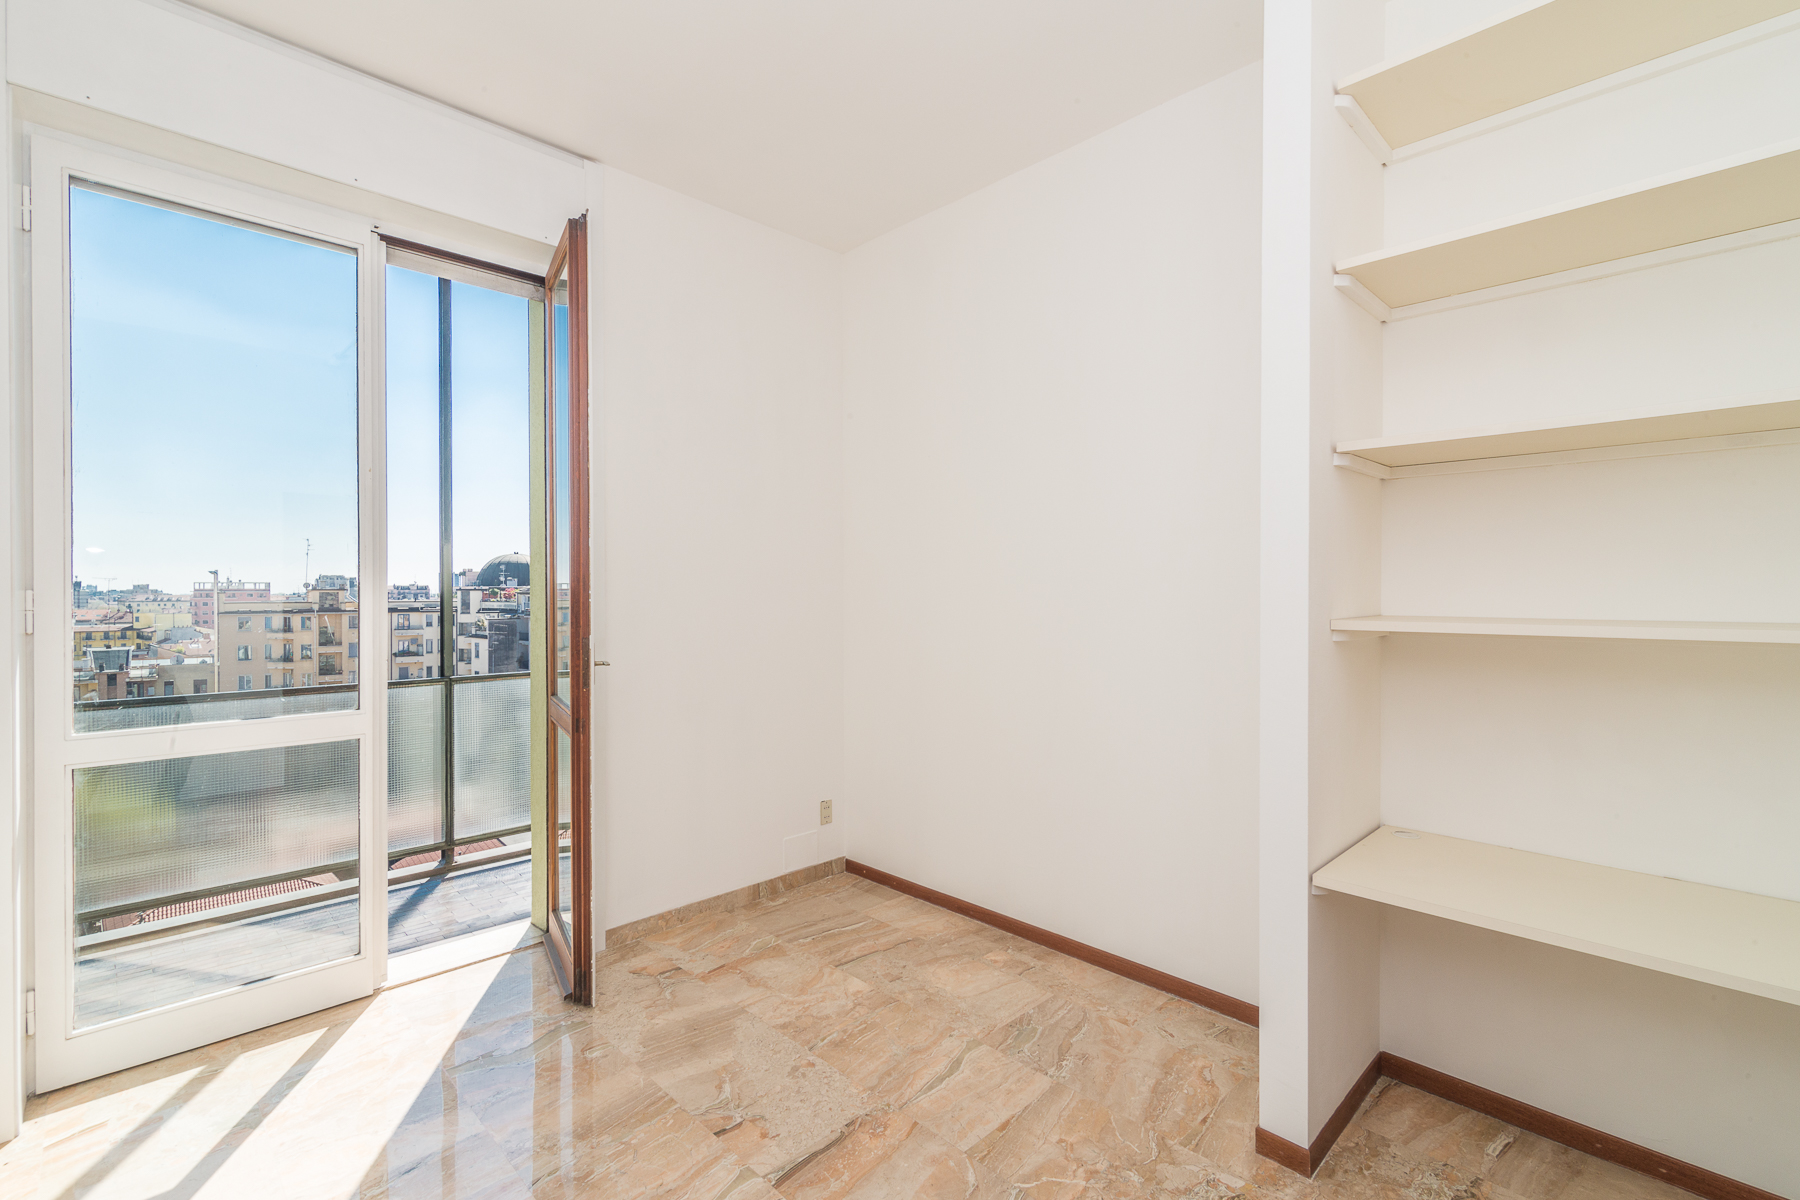 Additional photo for property listing at Extremely bright apartment with breath- taking view of the city Viale Angelo Filippetti Milano, Milan 20122 Italy